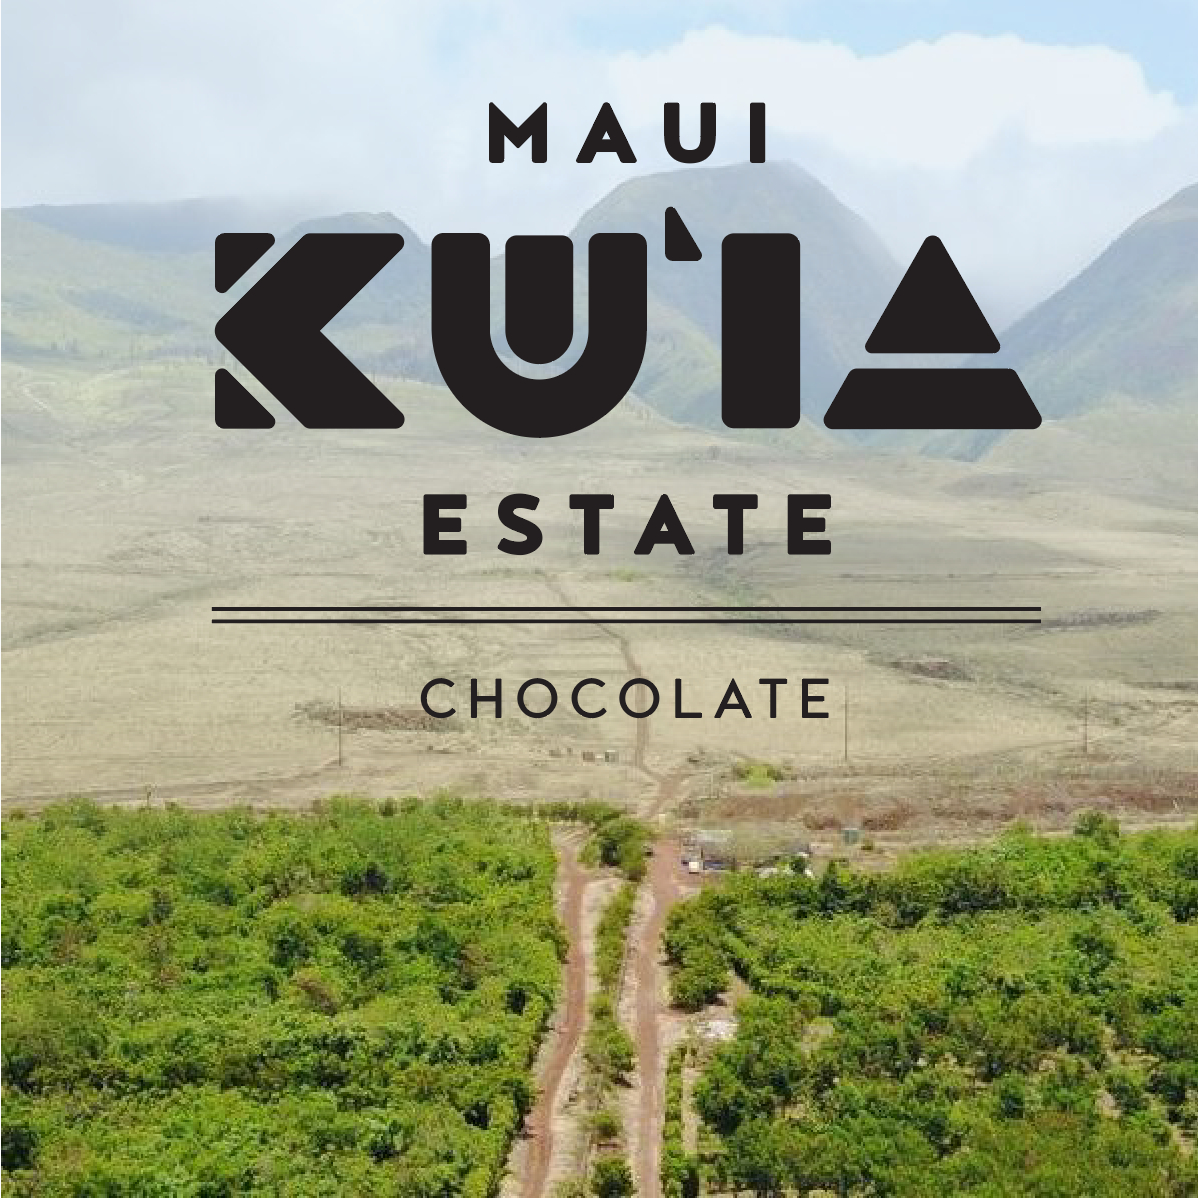 Maui Ku'ia Estate Chocolate